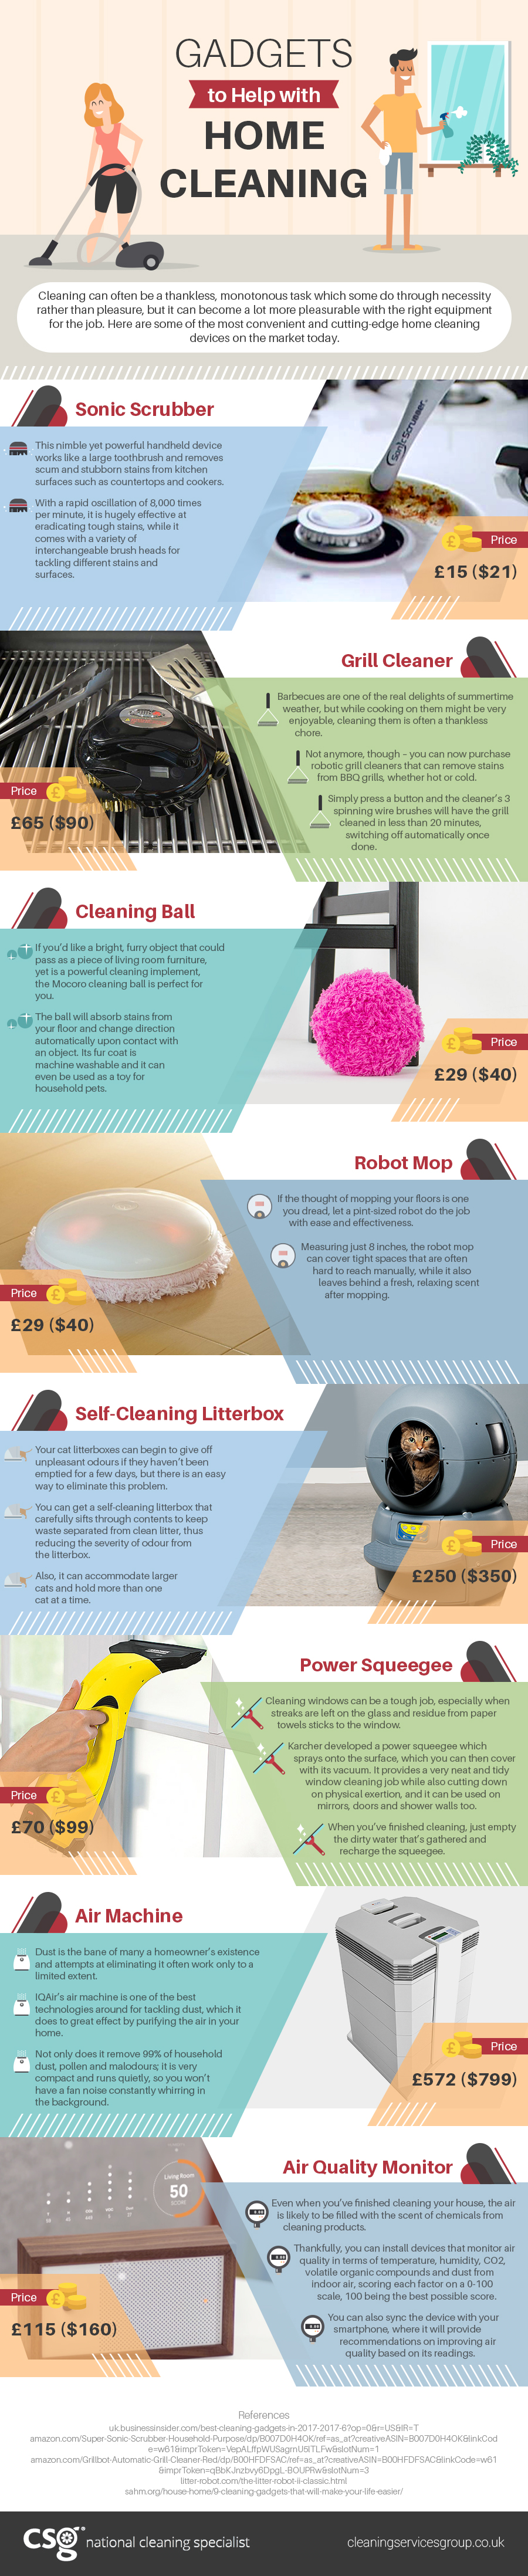 Gadgets to Help with Home Cleaning